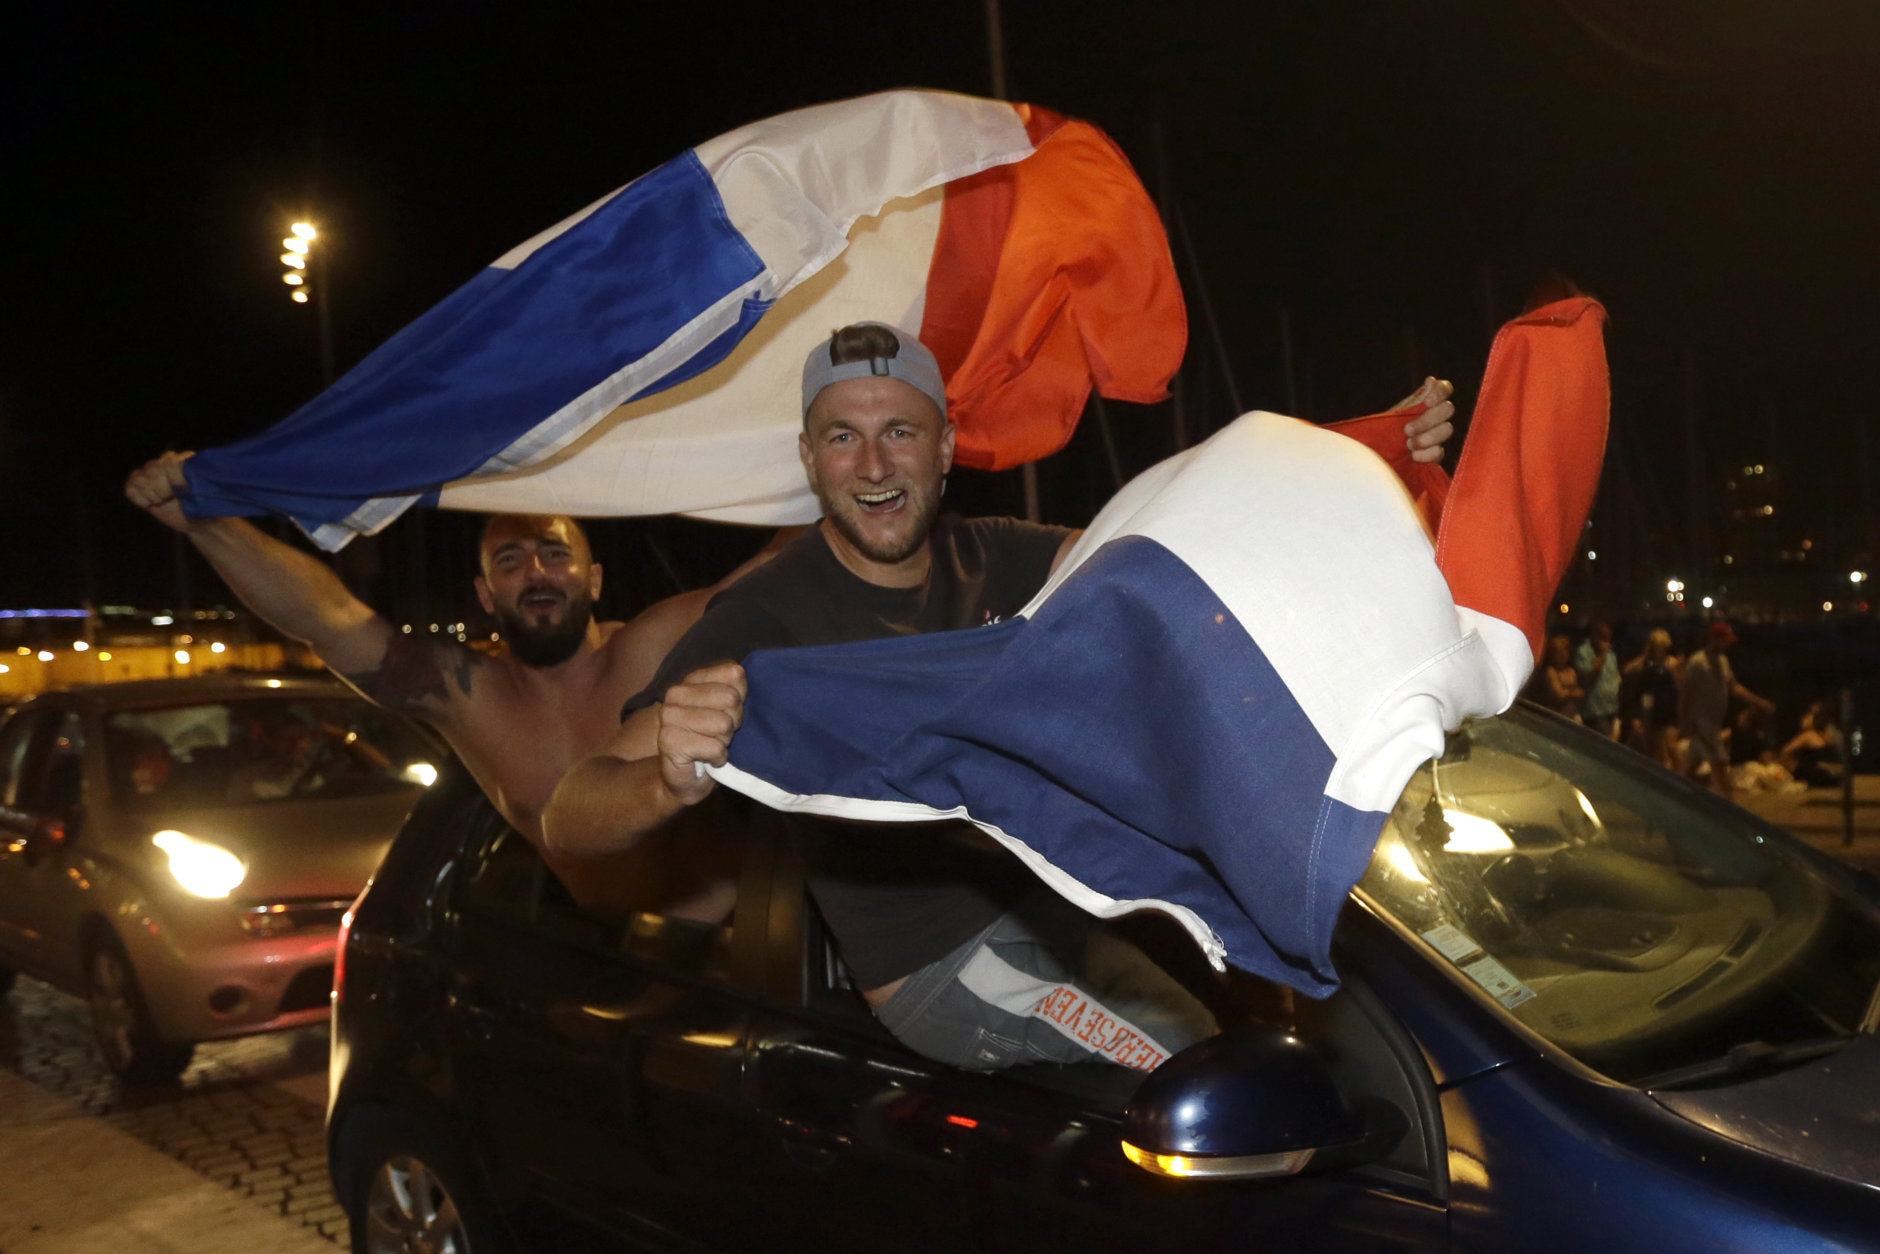 French soccer fans wave national flags while celebrating their team victory after watching the semifinal match between France and Belgium at the 2018 soccer World Cup, in Marseille, southern France, Tuesday July 10, 2018. France has advanced to the World Cup final for the first time since 2006 with a 1-0 win over Belgium. (AP Photo/Claude Paris)